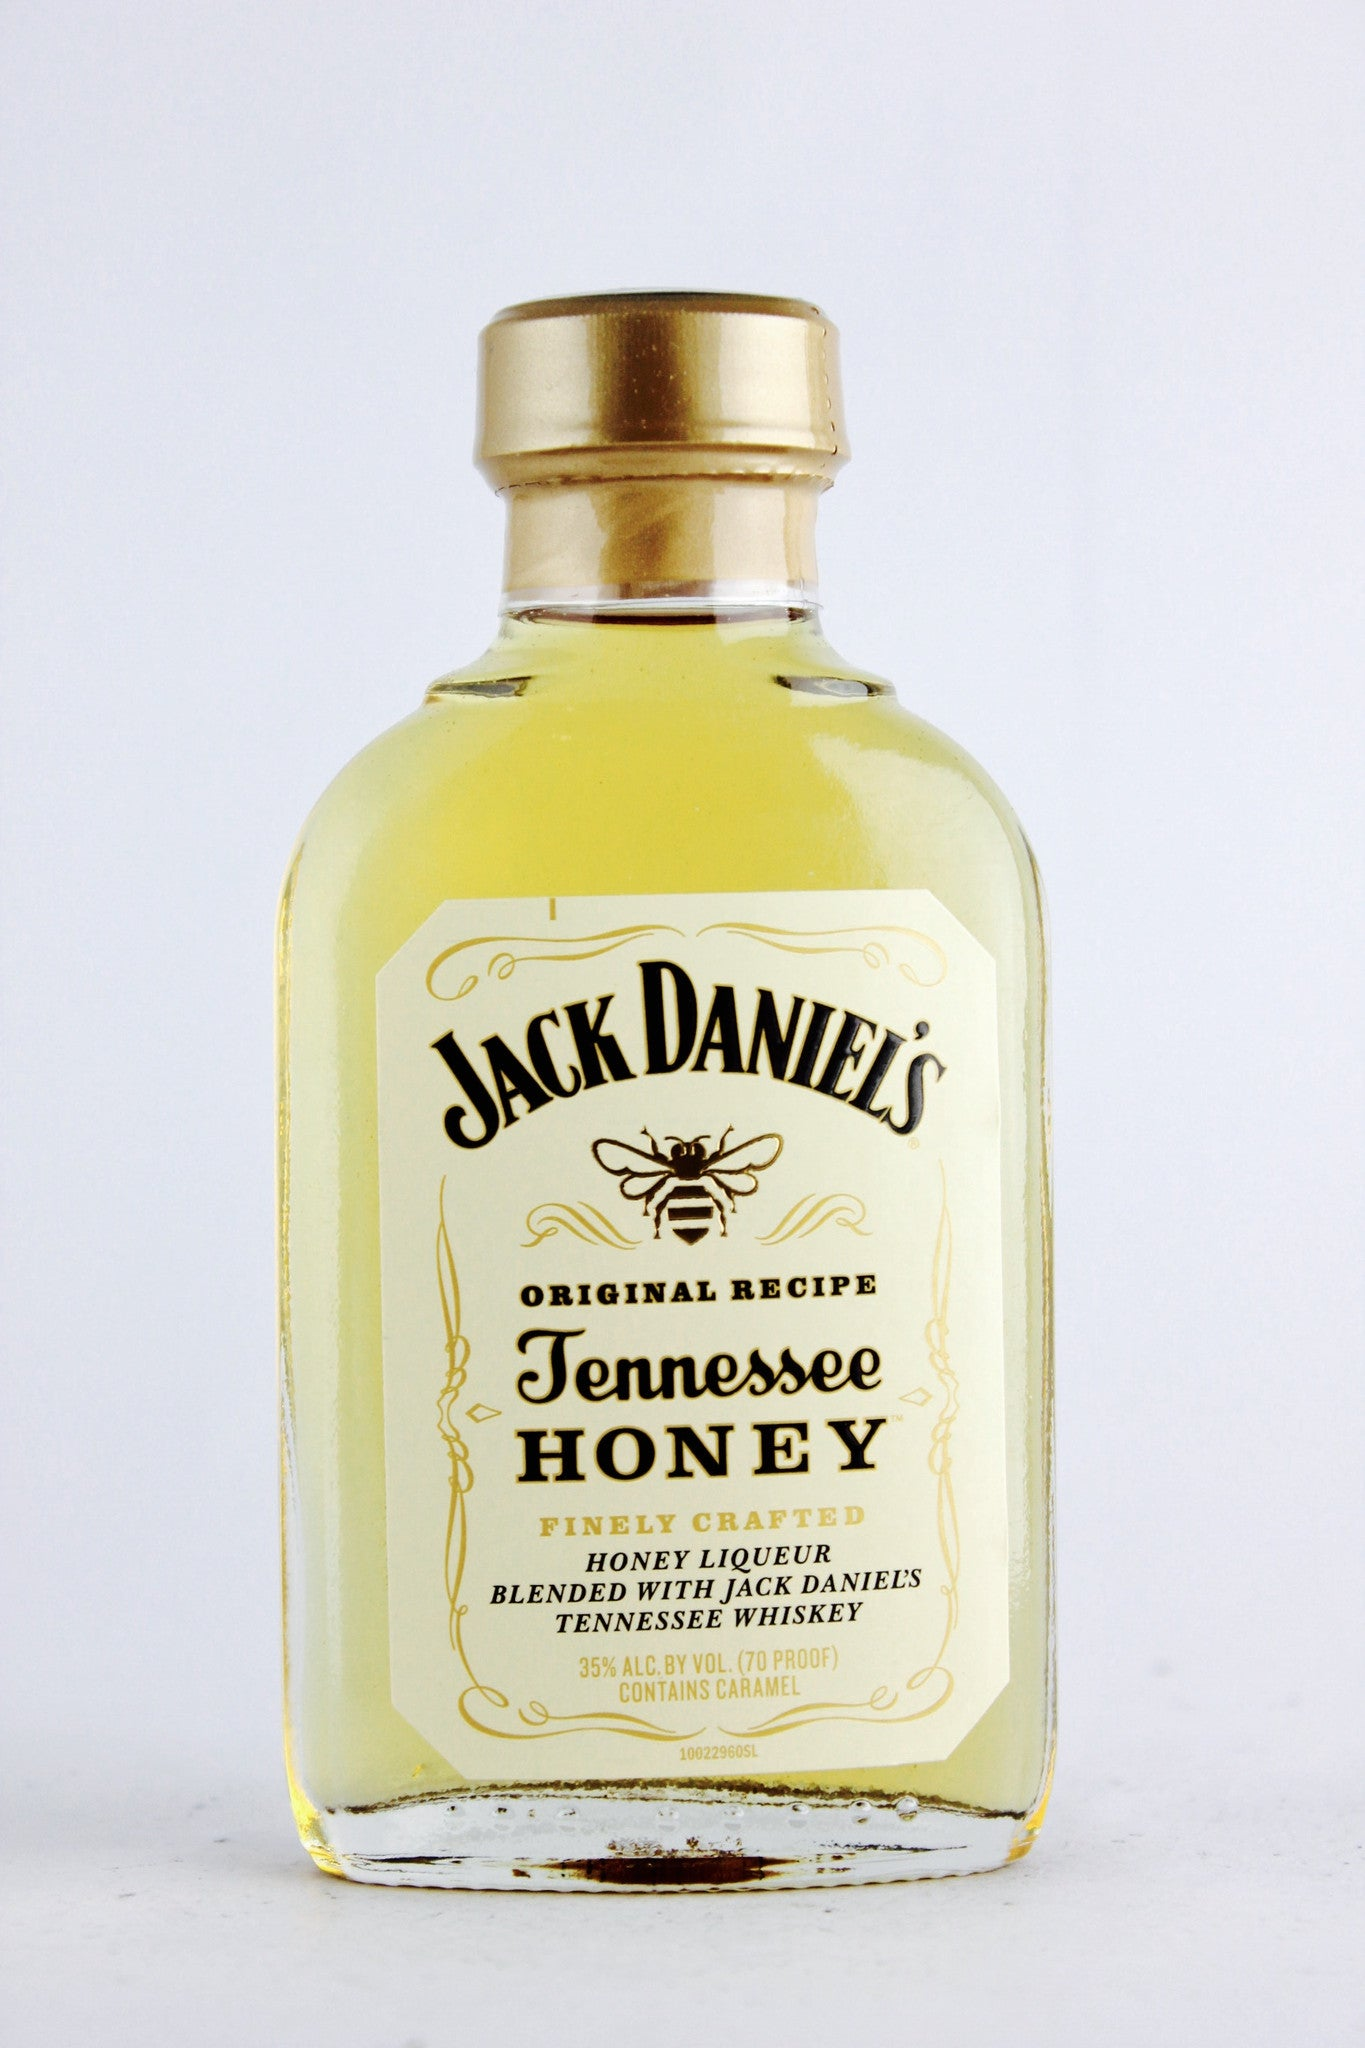 How much is a bottle of jack daniels honey whiskey cost